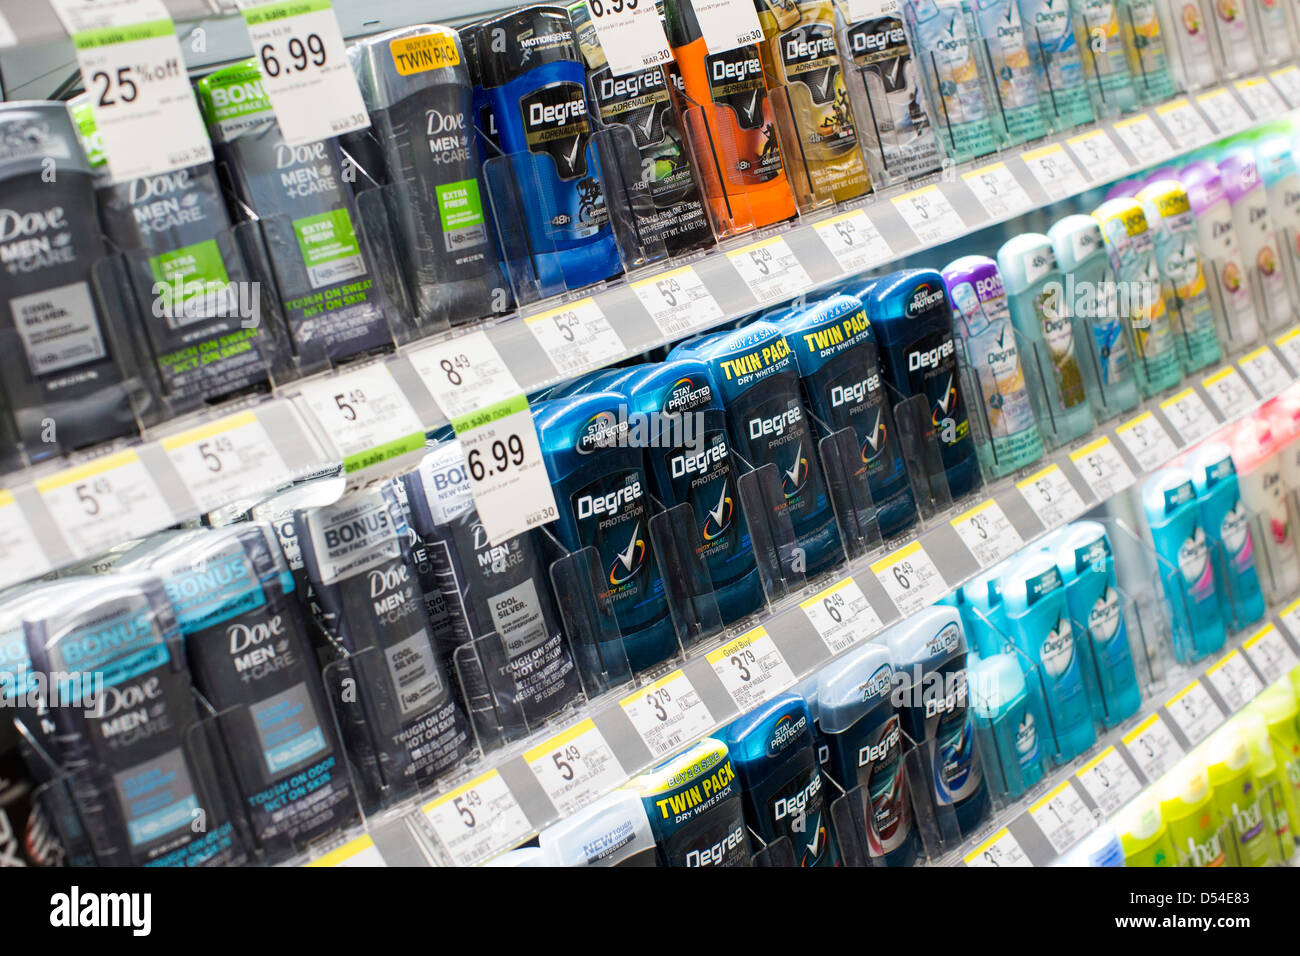 Dove and Degree deodorant products on display at a Walgreens Flagship store. - Stock Image